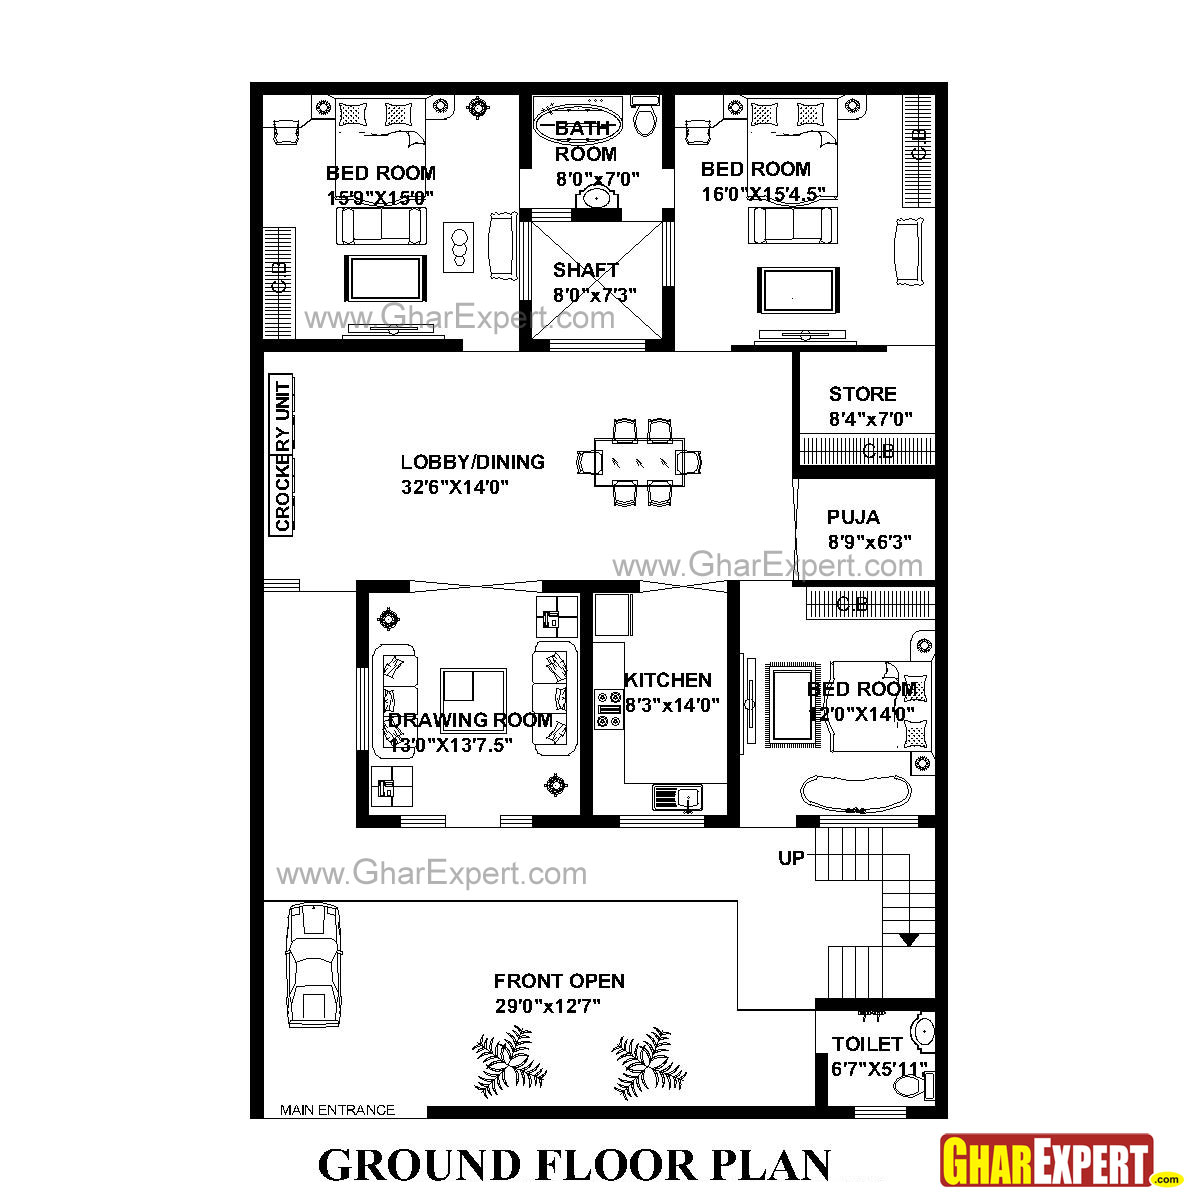 35201251056_1  Bedroom House Plans Under X Feet on